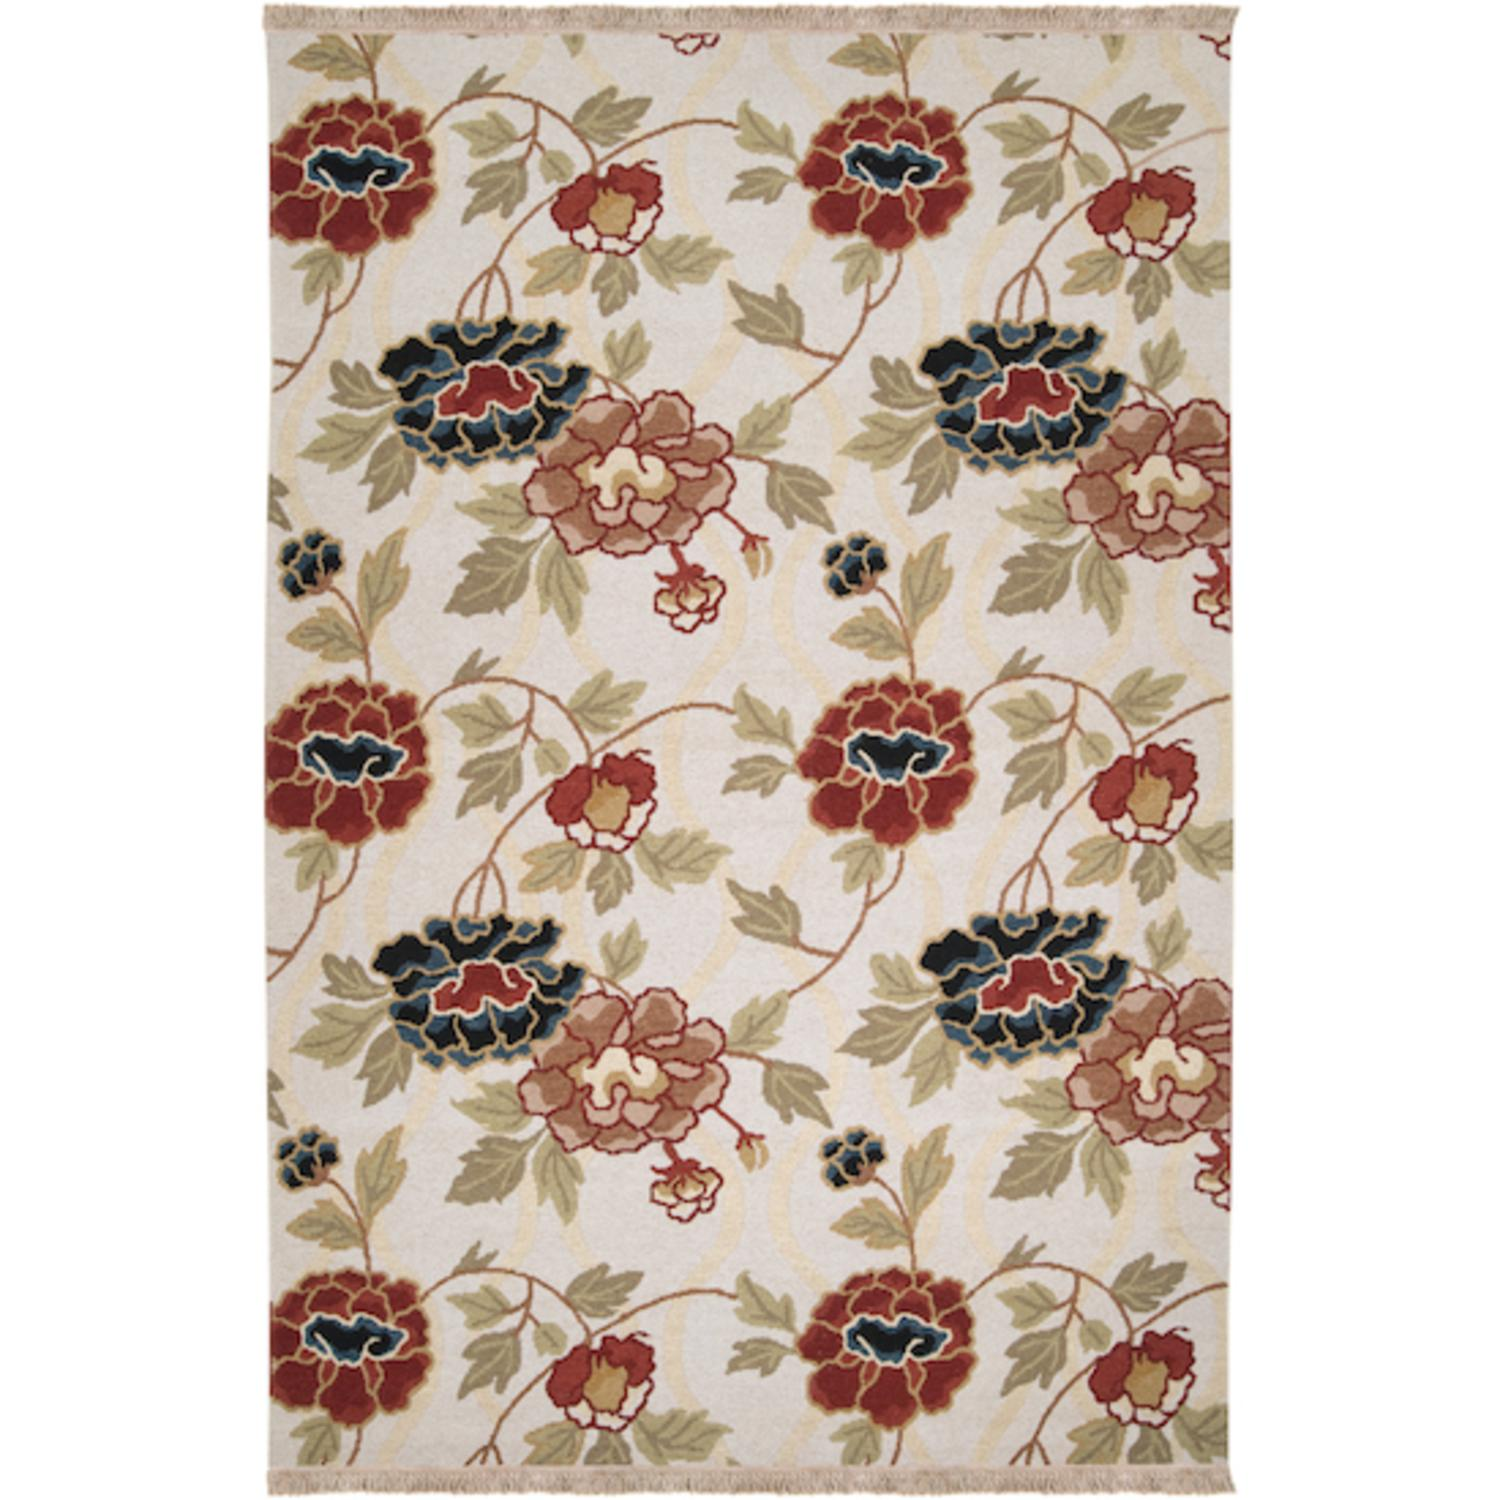 4' x 6' Heirloom Bouquet Fringed Khaki Floral Wool Area Throw Rug